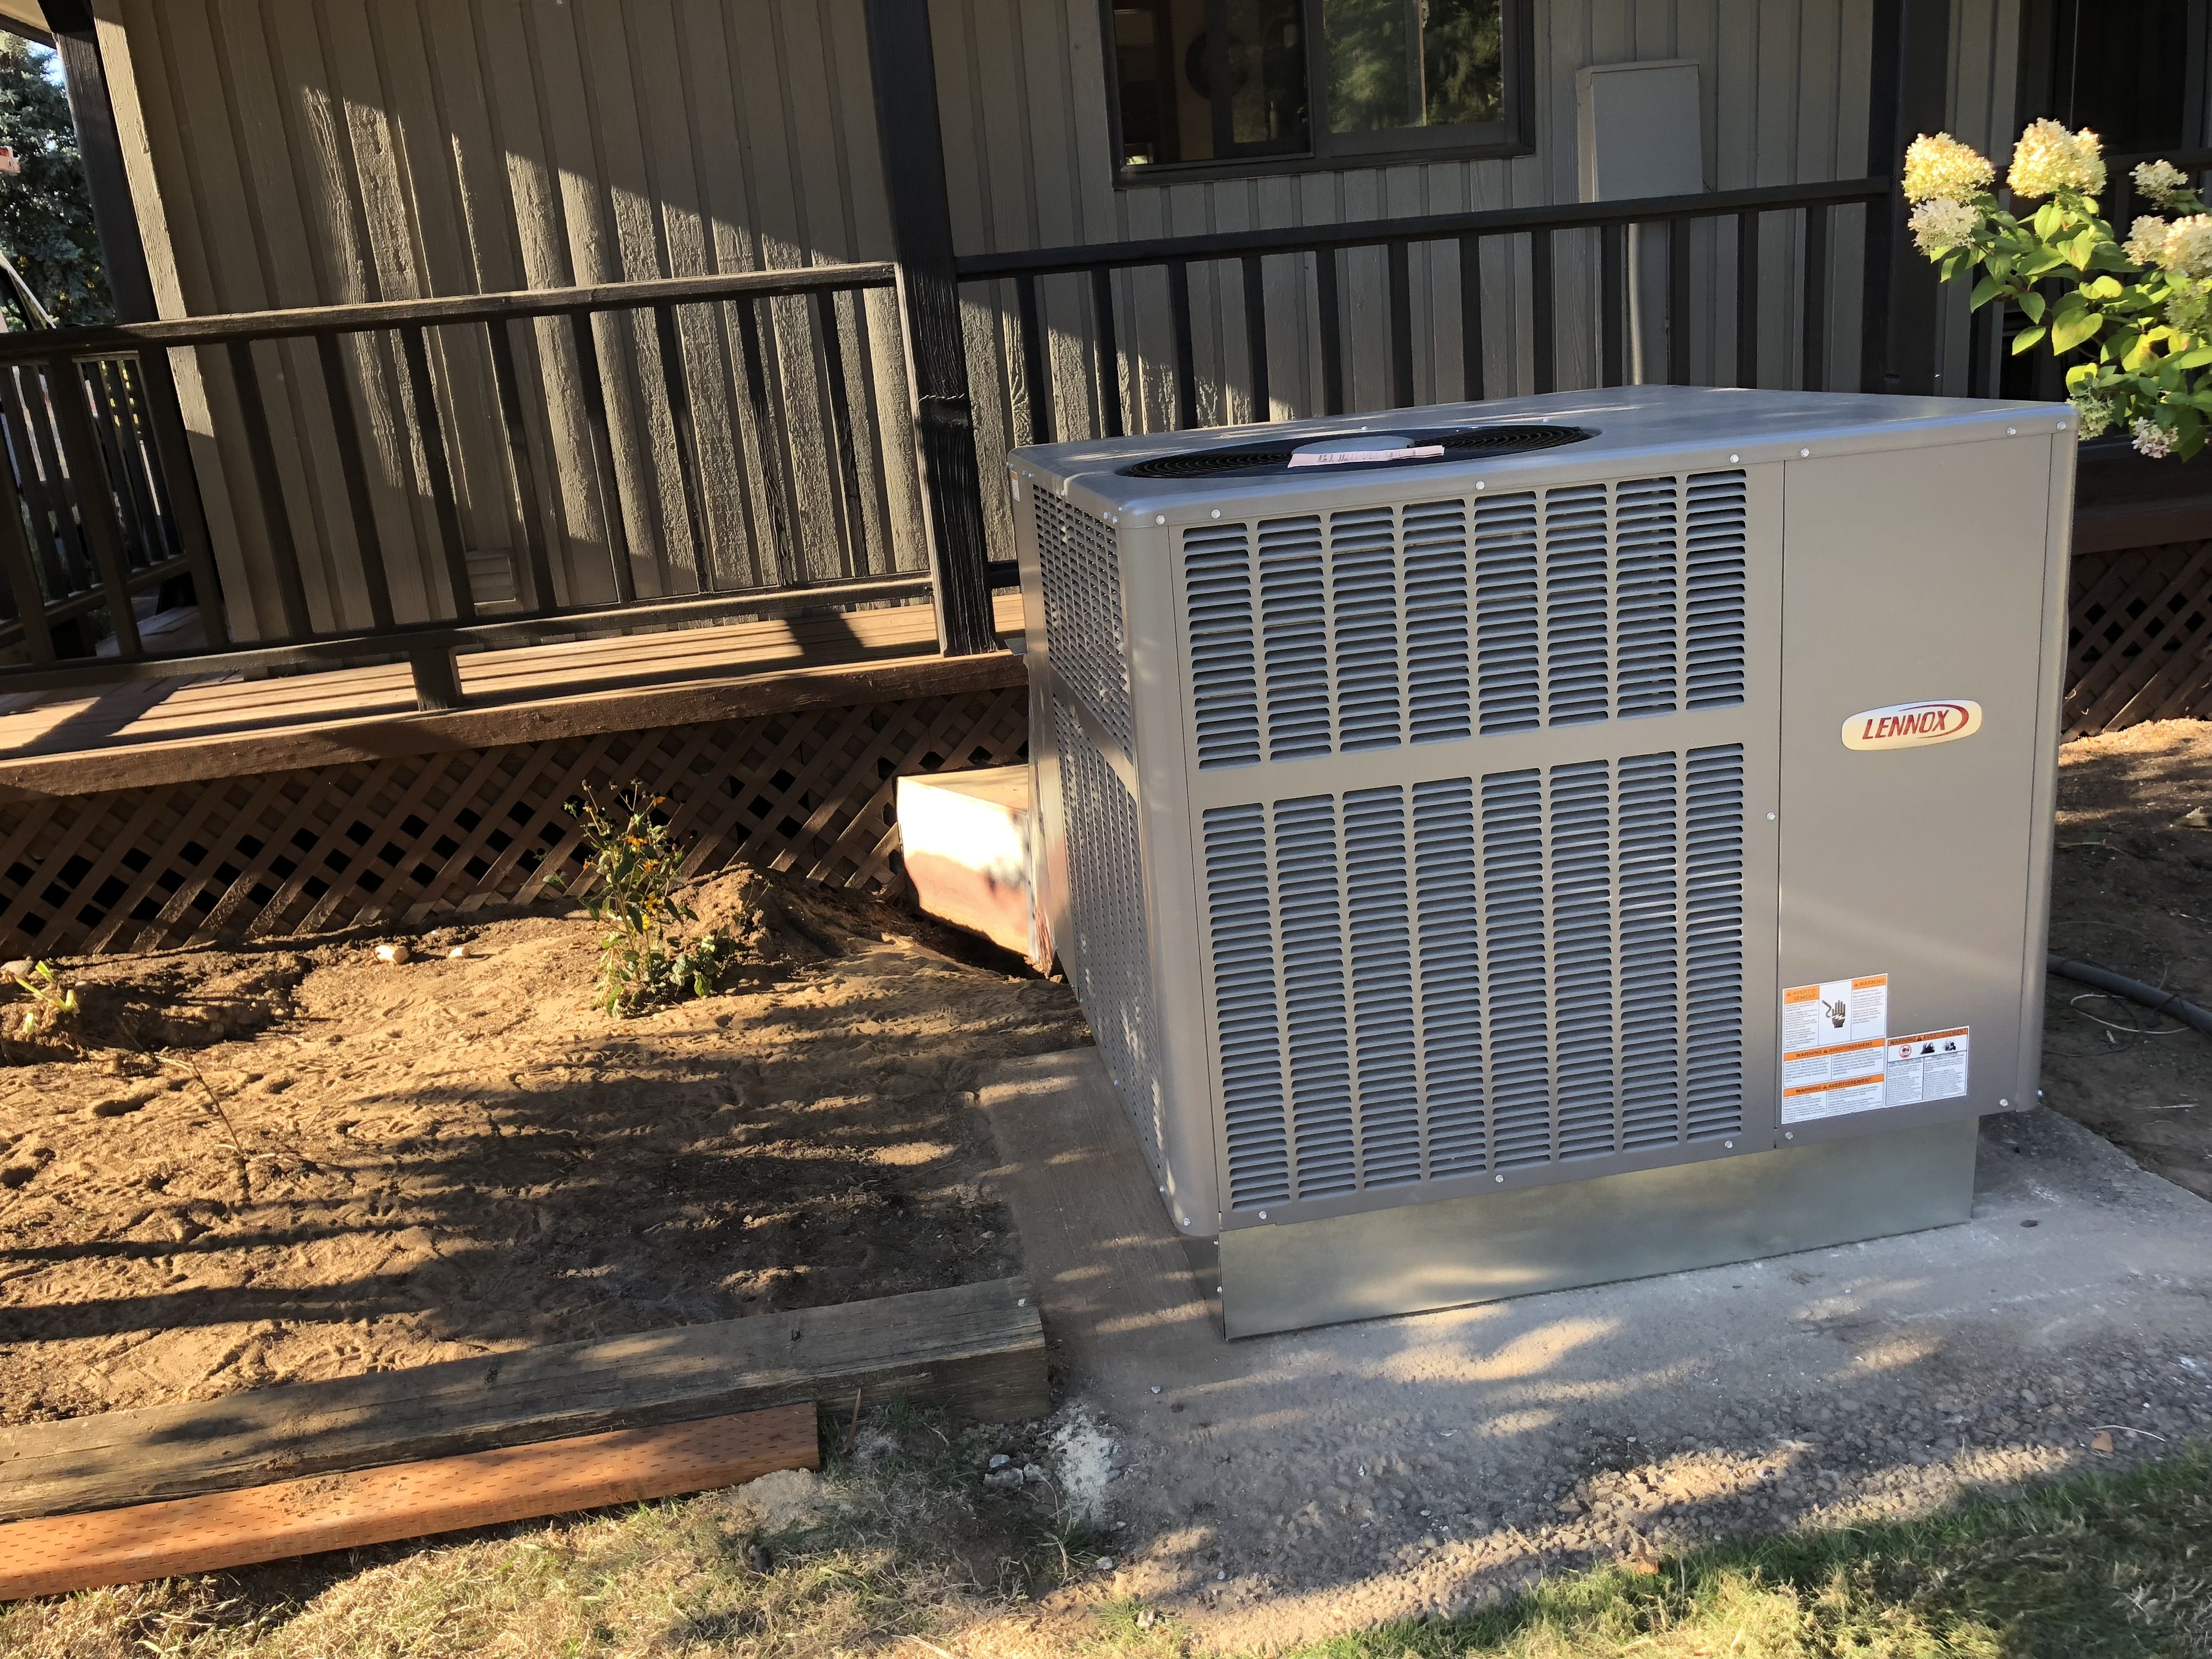 Pin by Miller's Heating & Air on Miller's Installs Air